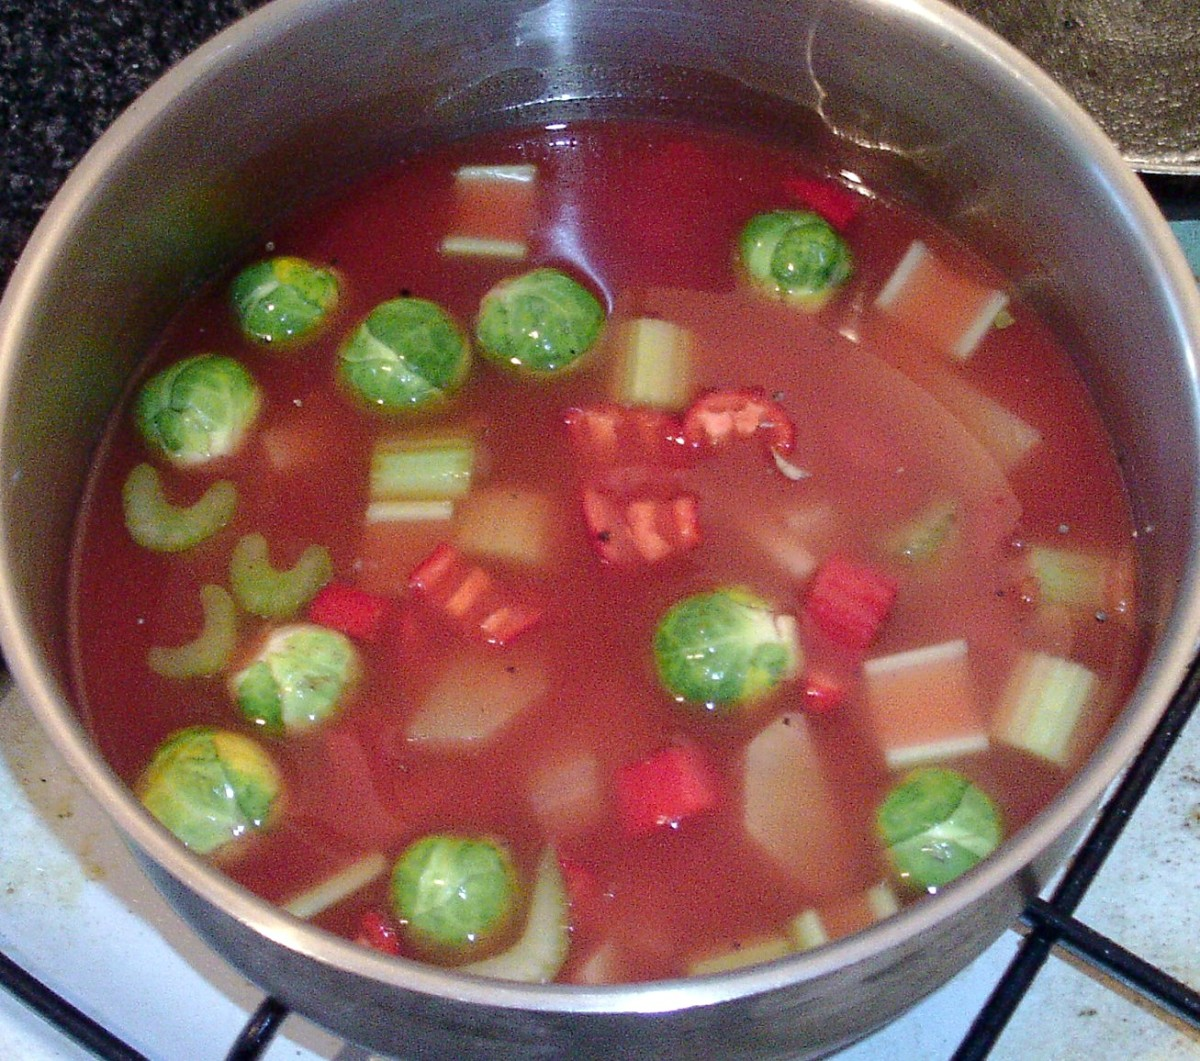 Stock is added to soup pot and ingredients are stirred together